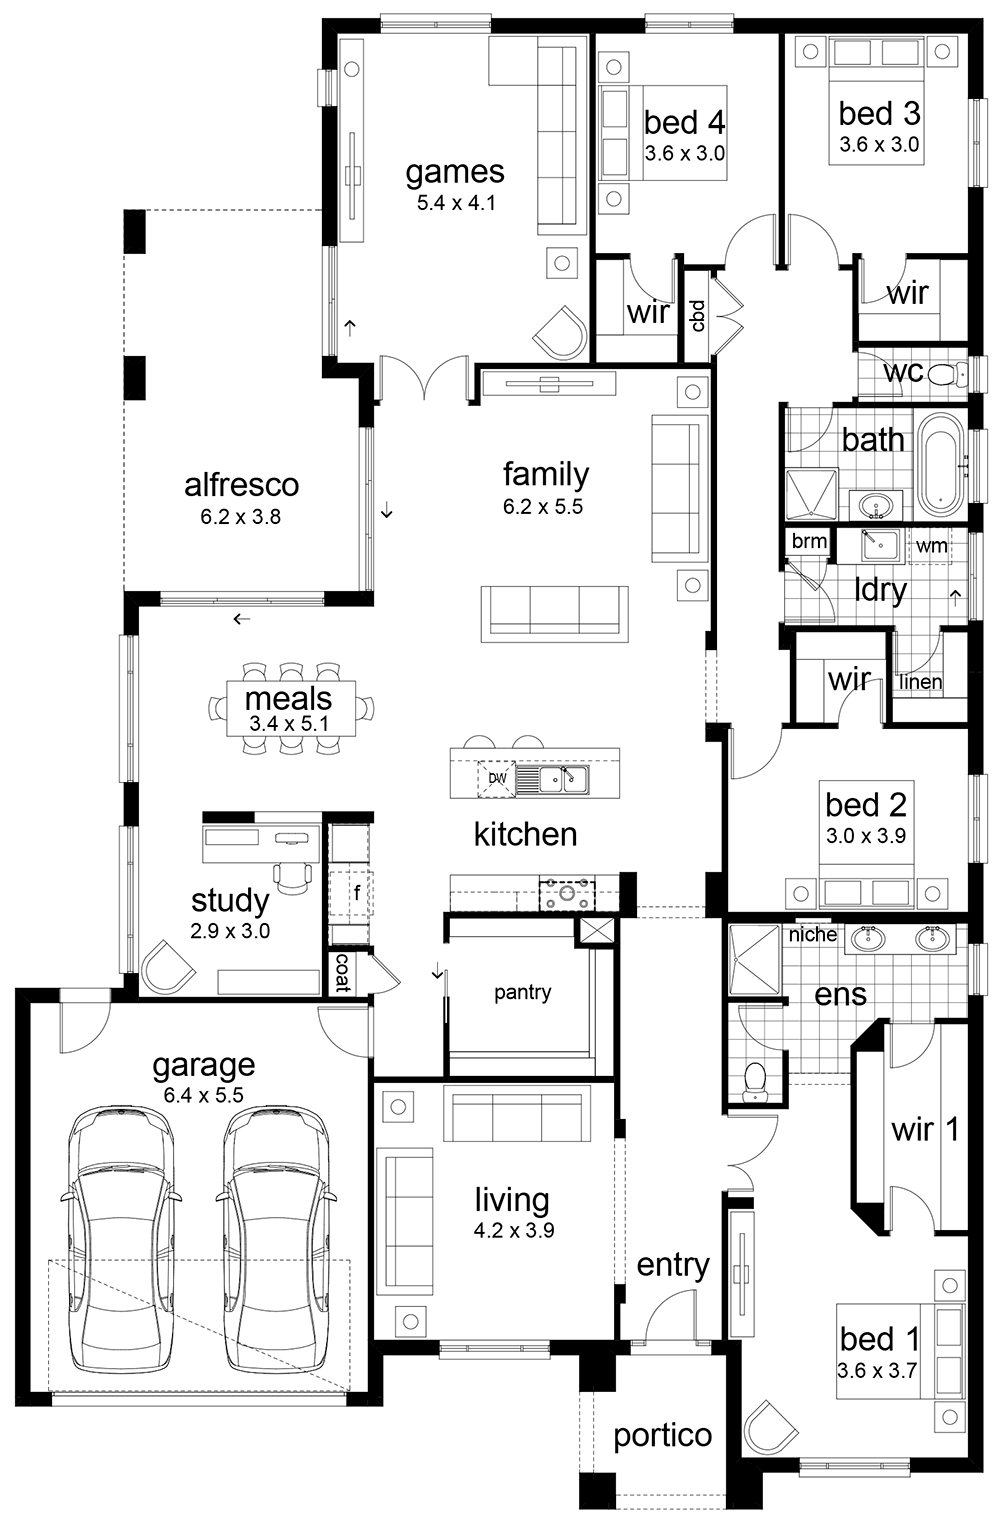 4 Bedroom Layout Design Of Floor Plan Friday 4 Bedroom Family Home